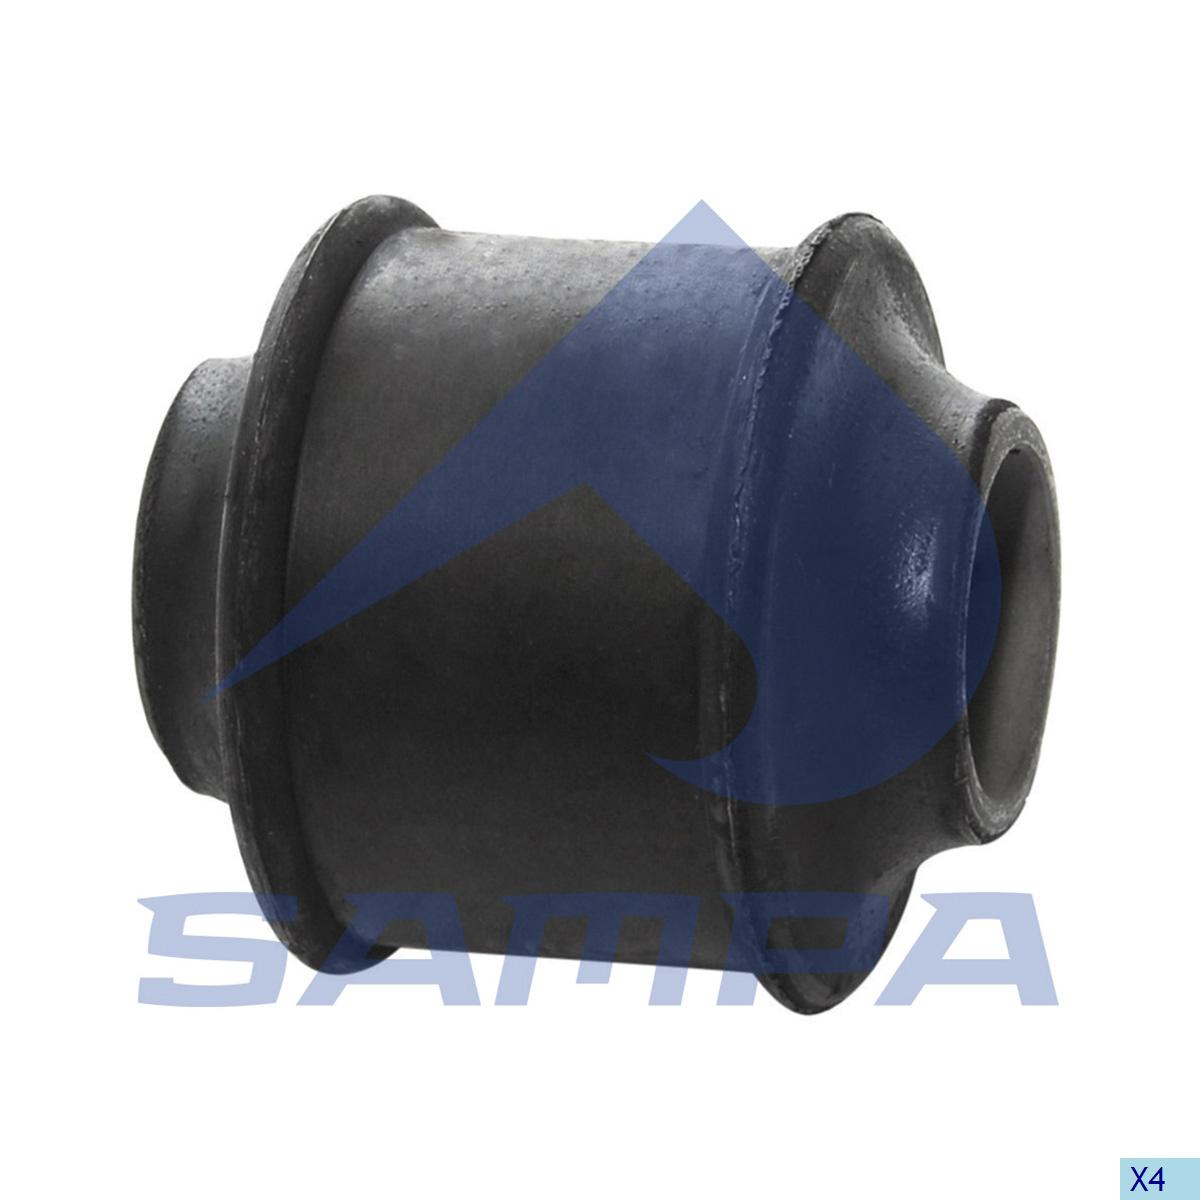 Rubber Bushing, Shock Absorber, Volvo, Suspension